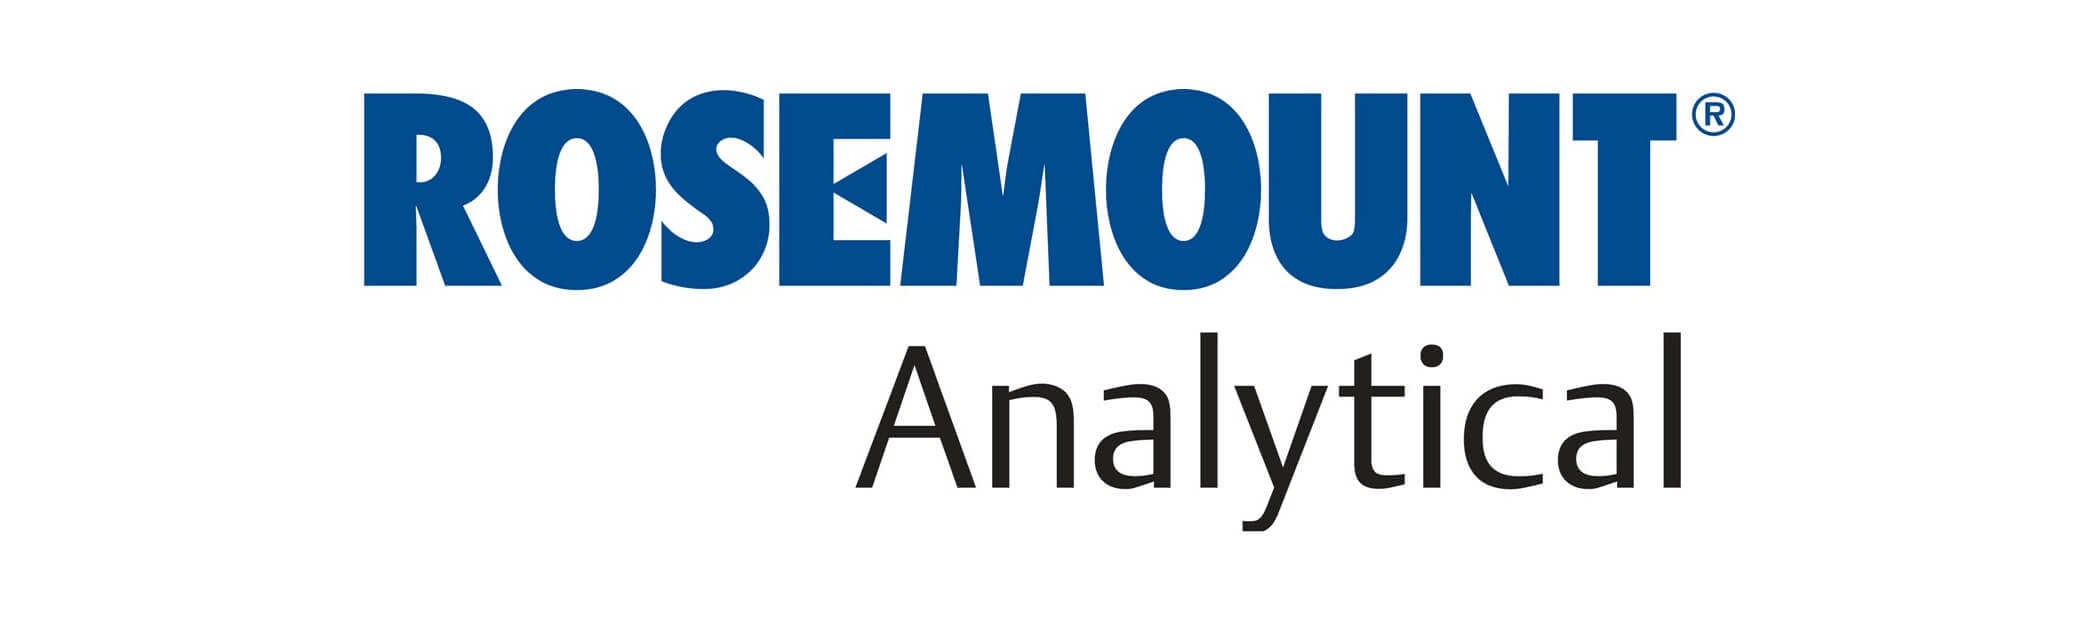 Rosemount Analytical